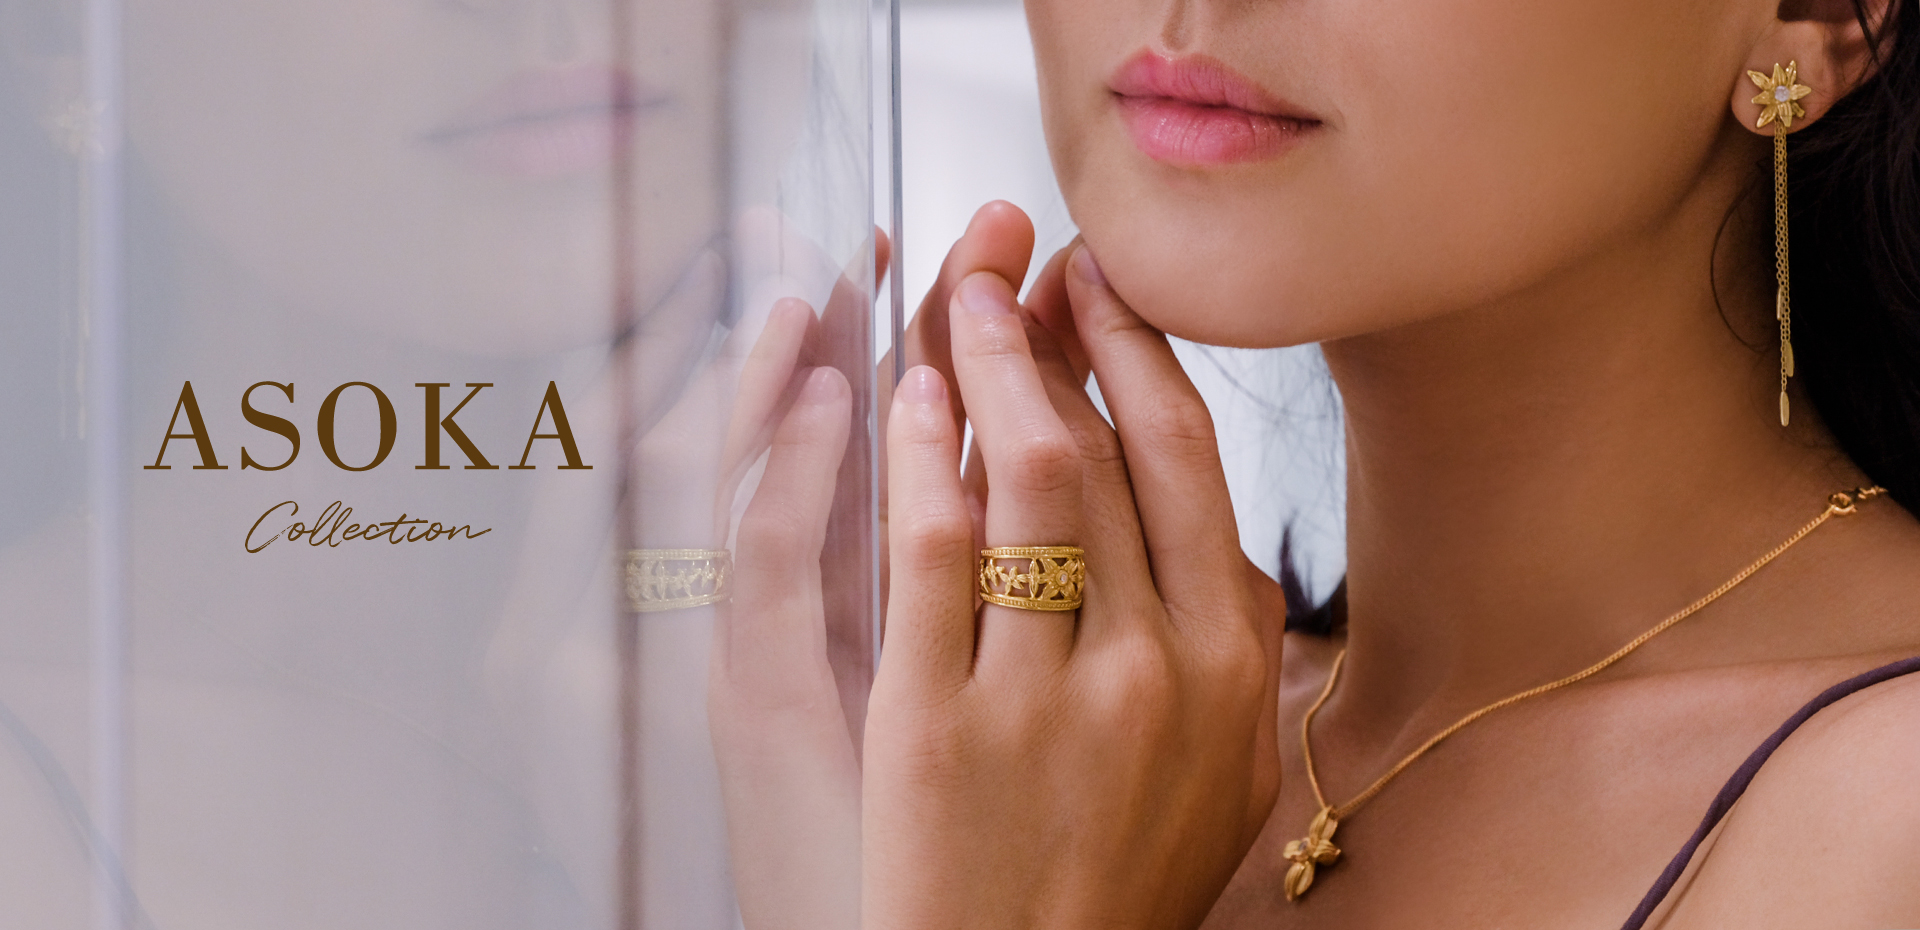 Asoka Collection